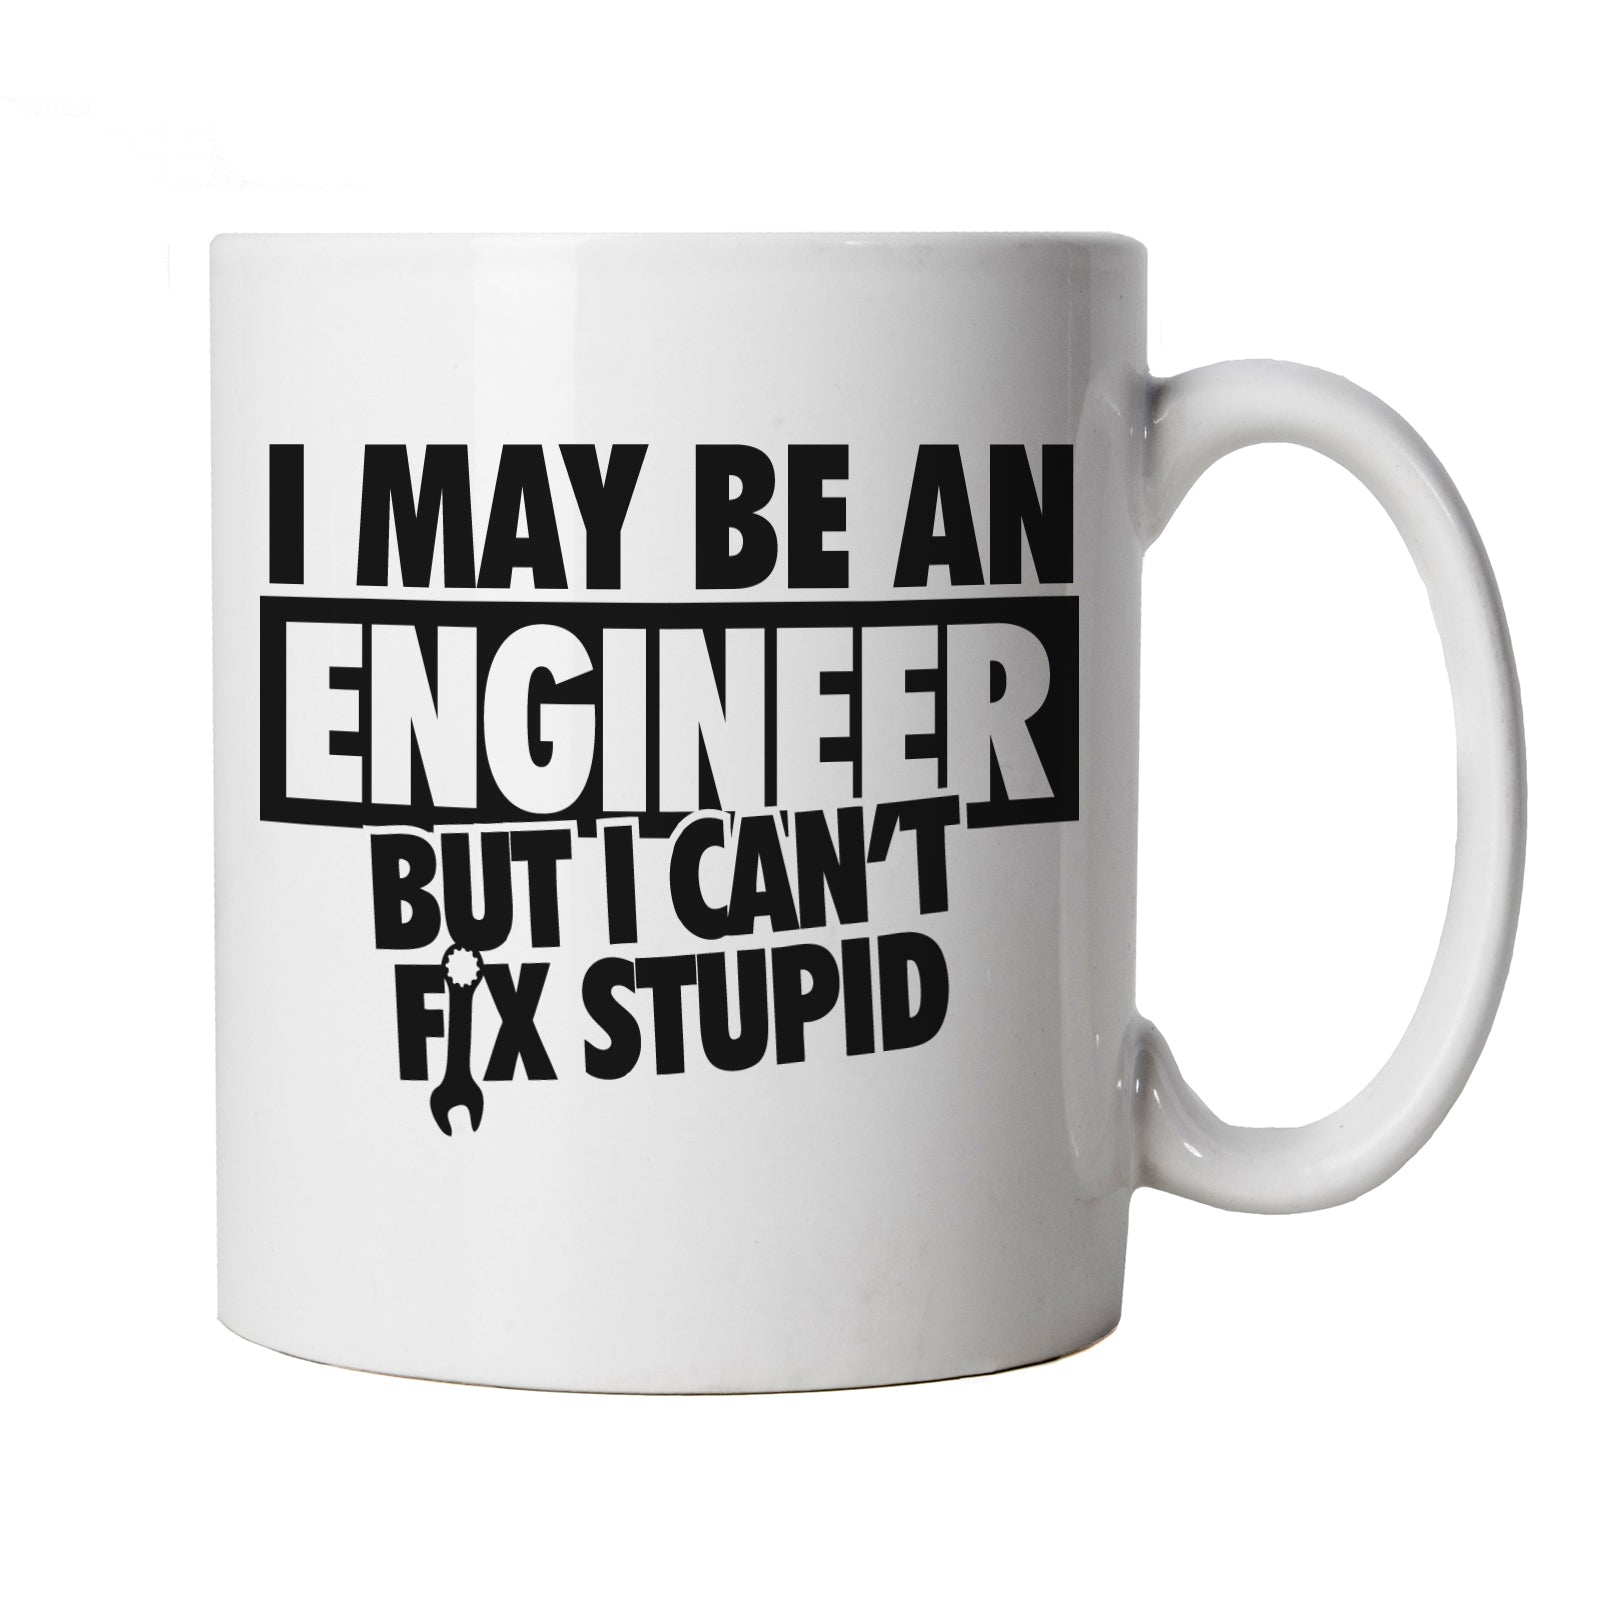 I May Be An Engineer But I Can't Fix Stupid Mug